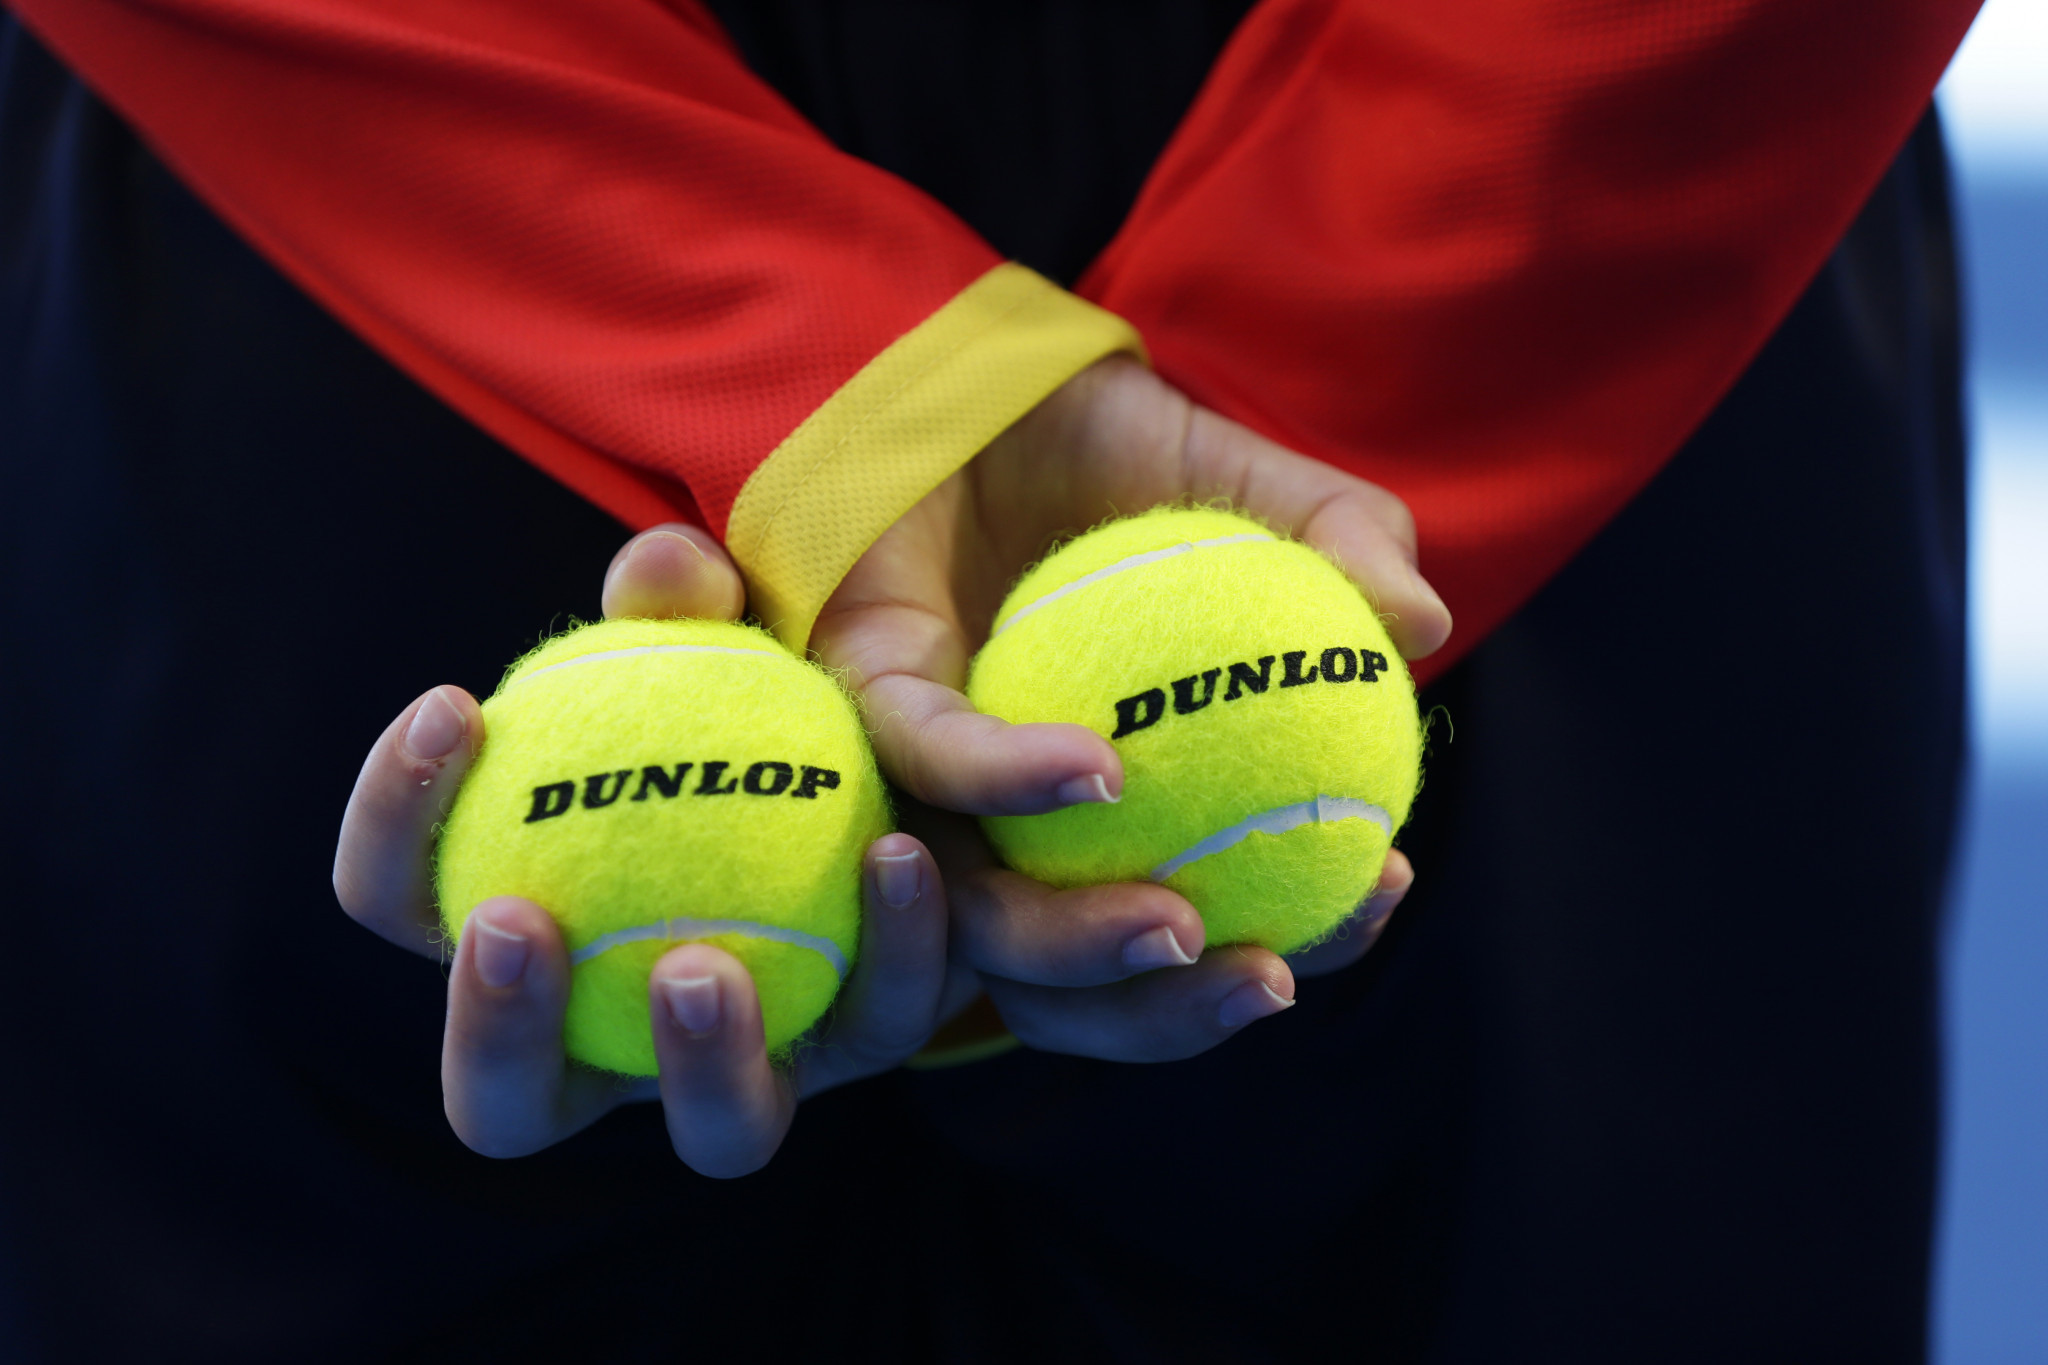 Sports equipment brand Dunlop and ATP have signed a five-year partnership which will see Dunlop become the official ball for ATP events ©Getty Images